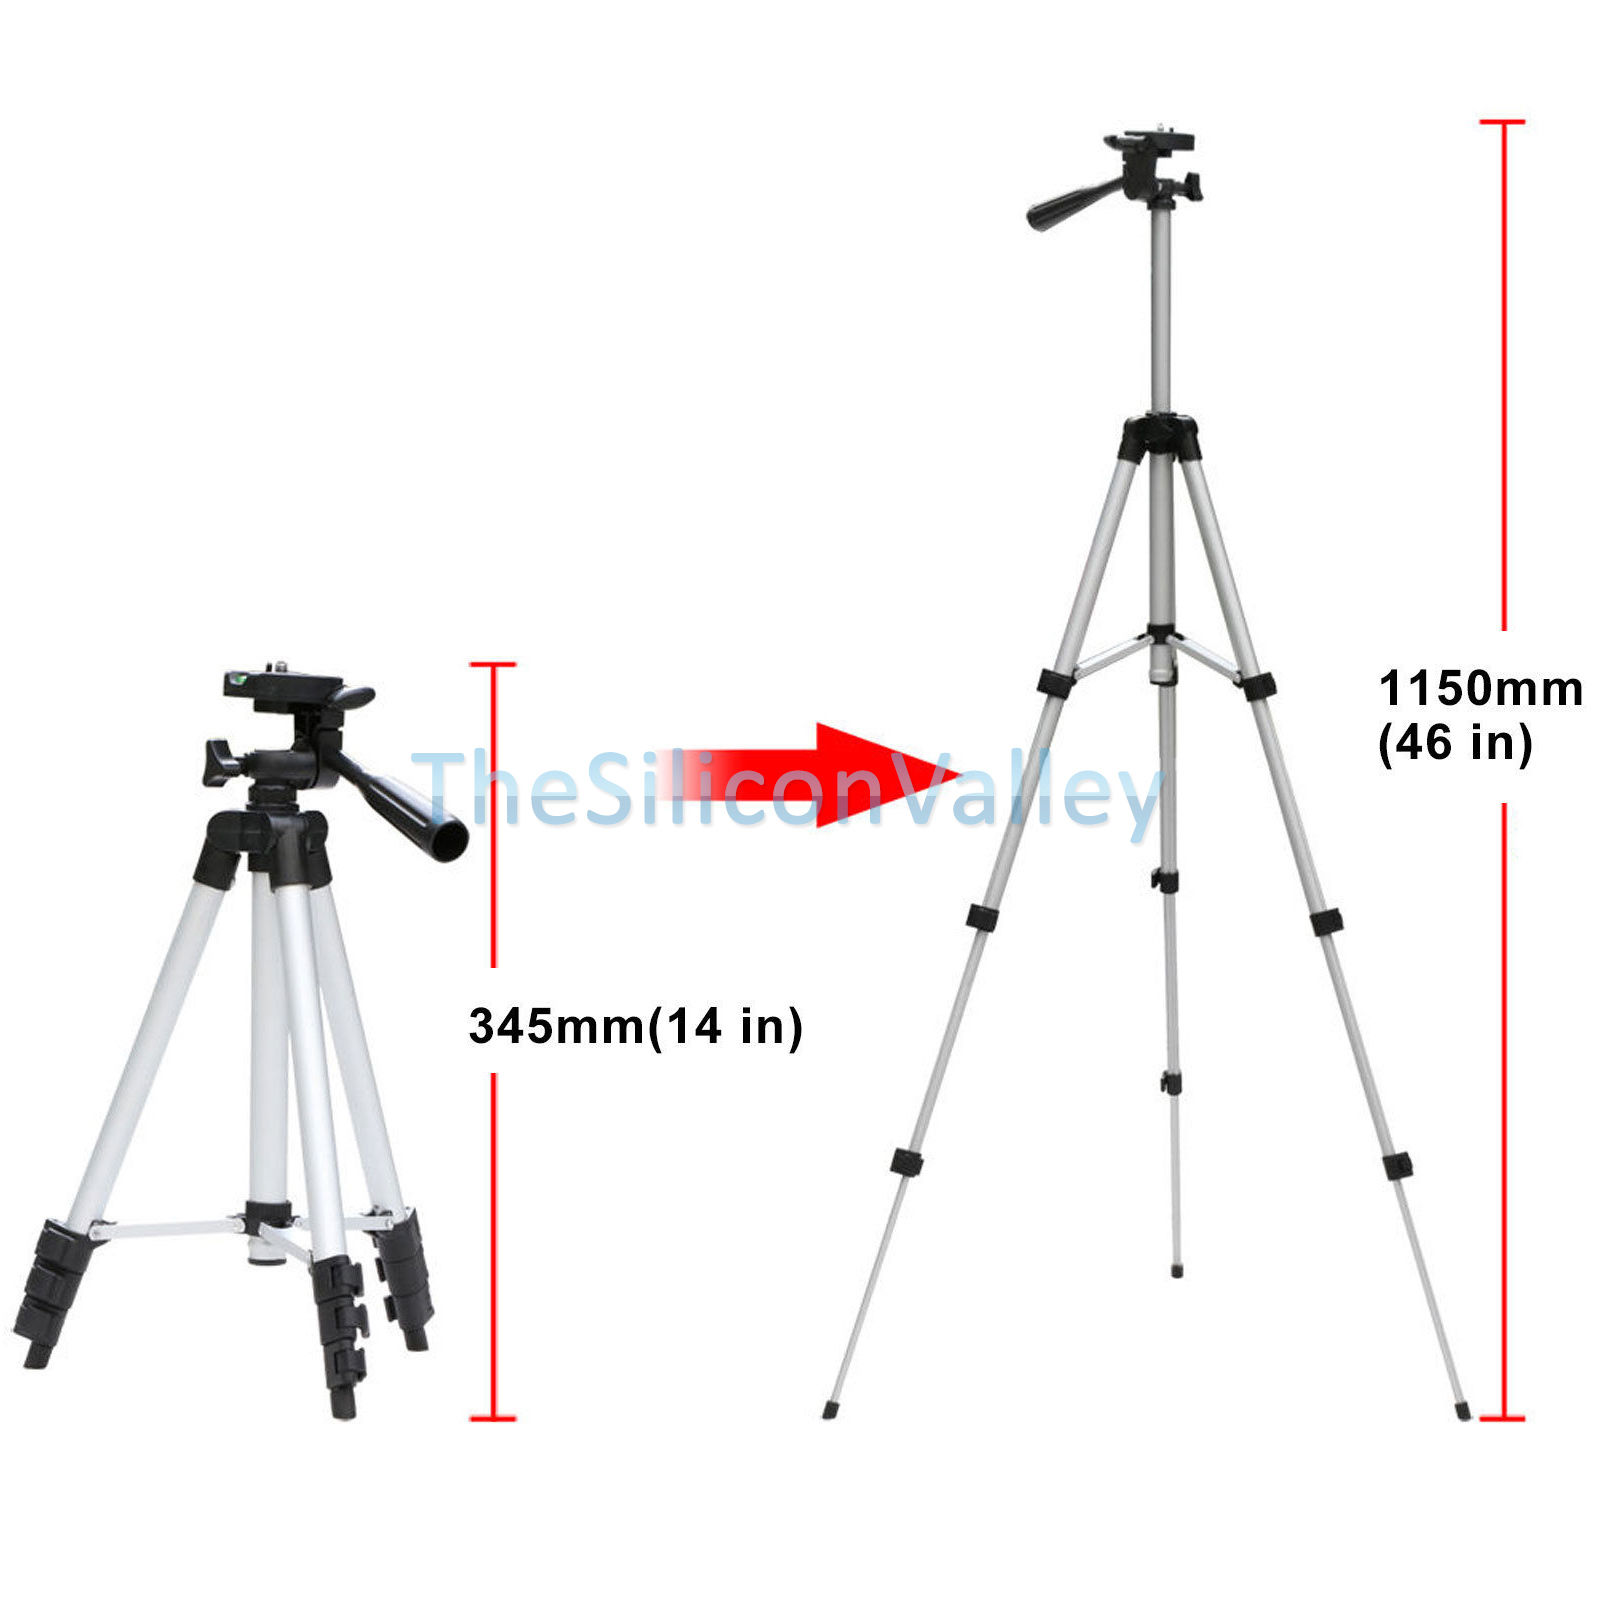 Portable Professional 360° Camera Tripod Stand Mount+Tablet Holder Fr iPad 2/3/4